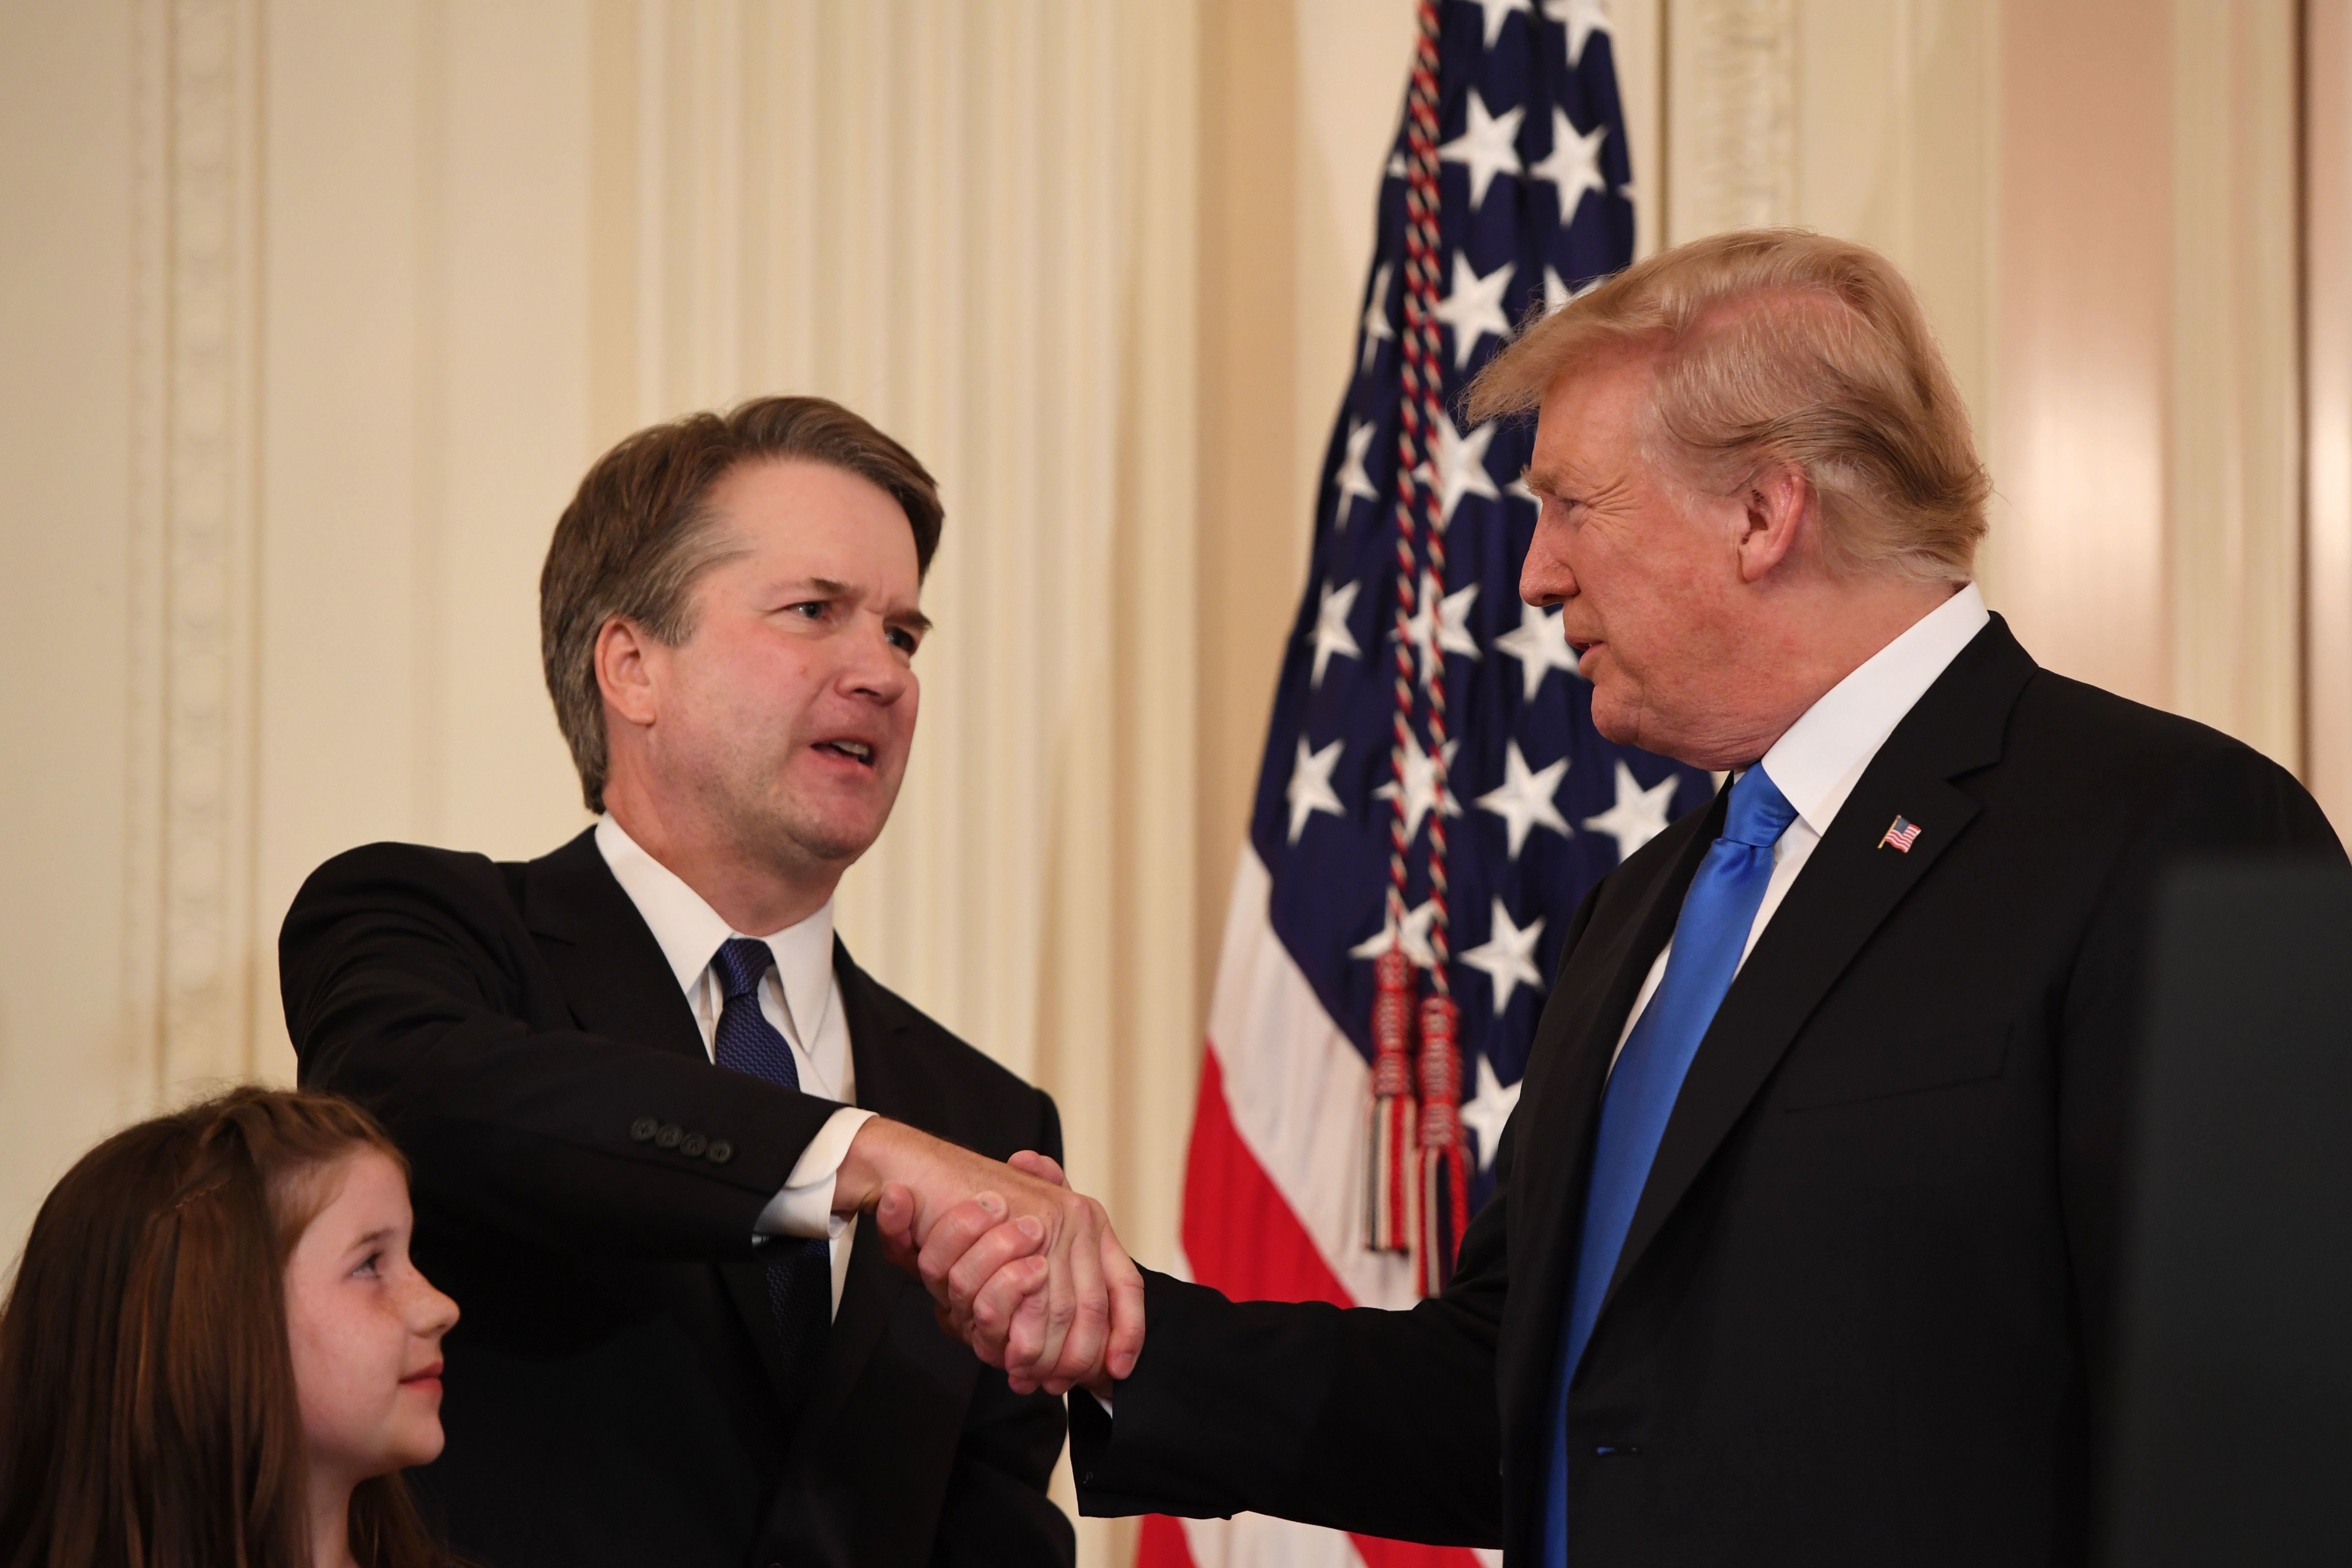 US Judge Brett Kavanaugh (L) shakes hands with US President Donald Trump after being nominated to the Supreme Court in the East Room of the White House on July 9, 2018 in Washington, DC. (Photo by SAUL LOEB / AFP)        (Photo credit should read SAUL LOEB/AFP/Getty Images)